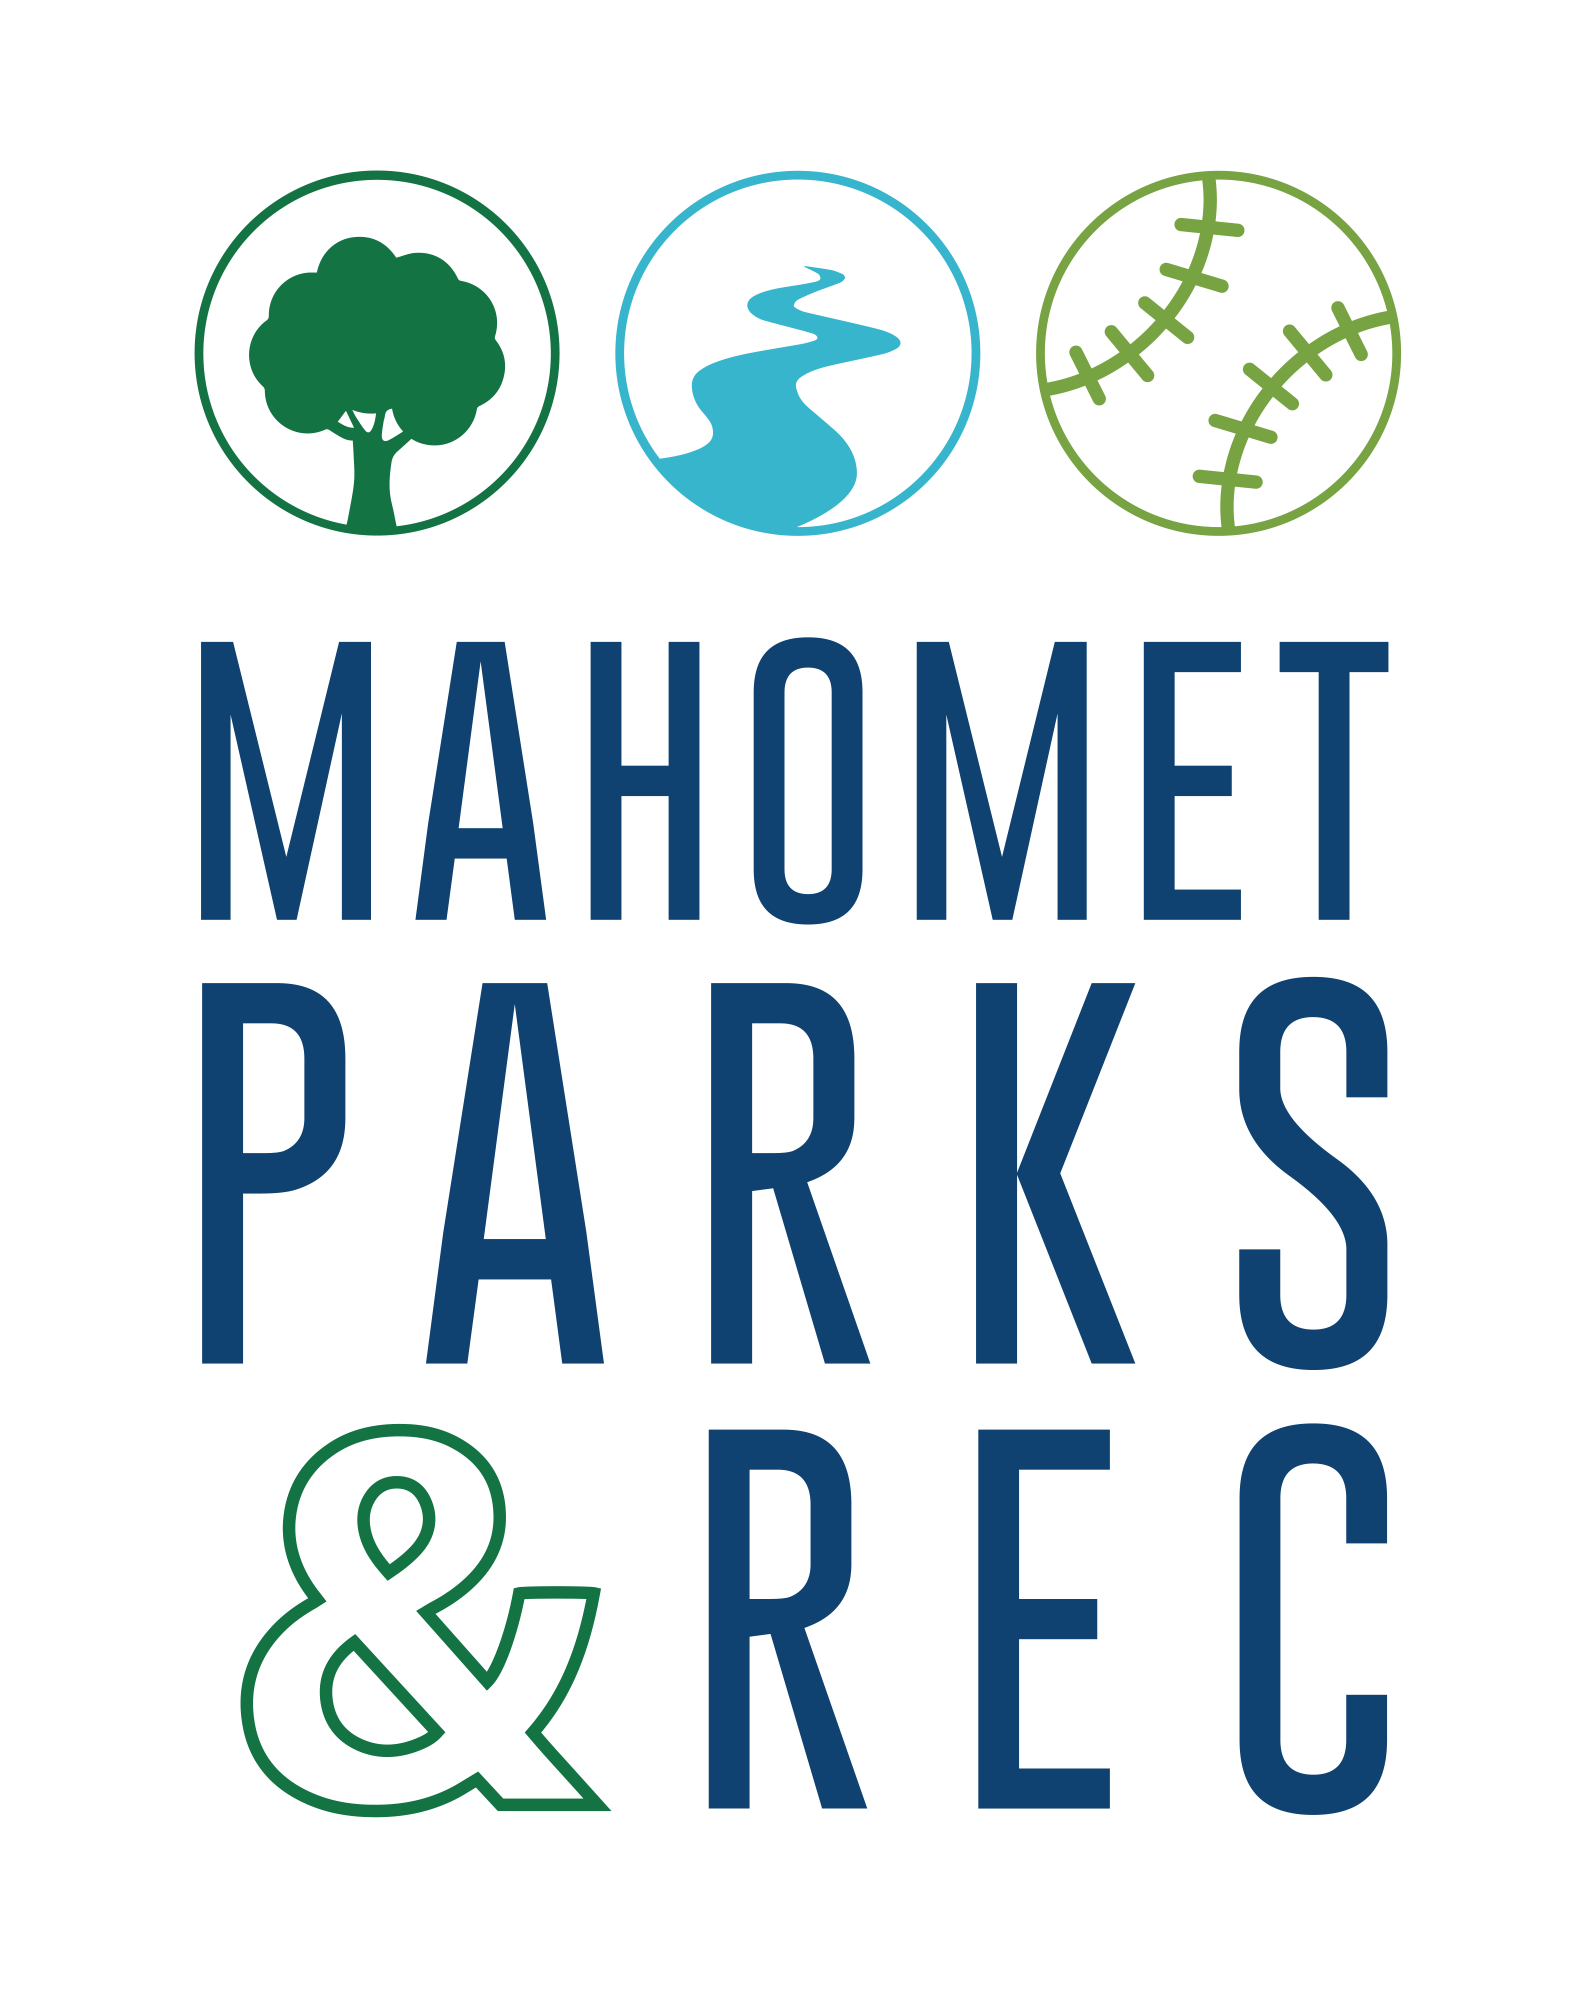 Village of Mahomet - Parks and Recreation Department